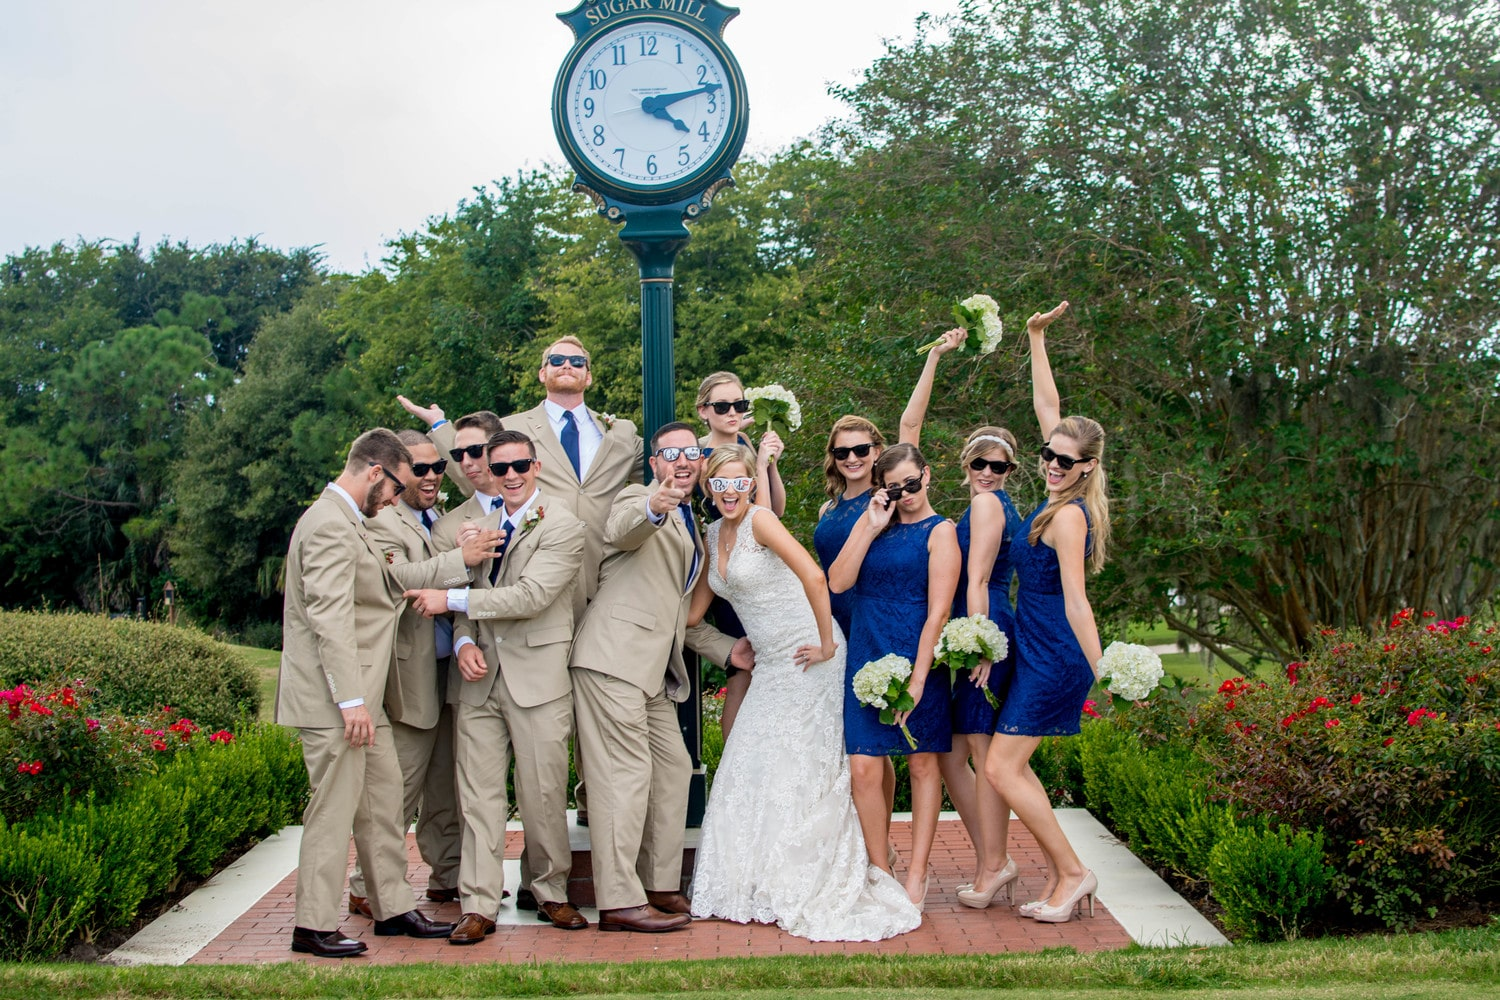 Sugar Mill Country Club - entire wedding party doing fun pose with sunglasses